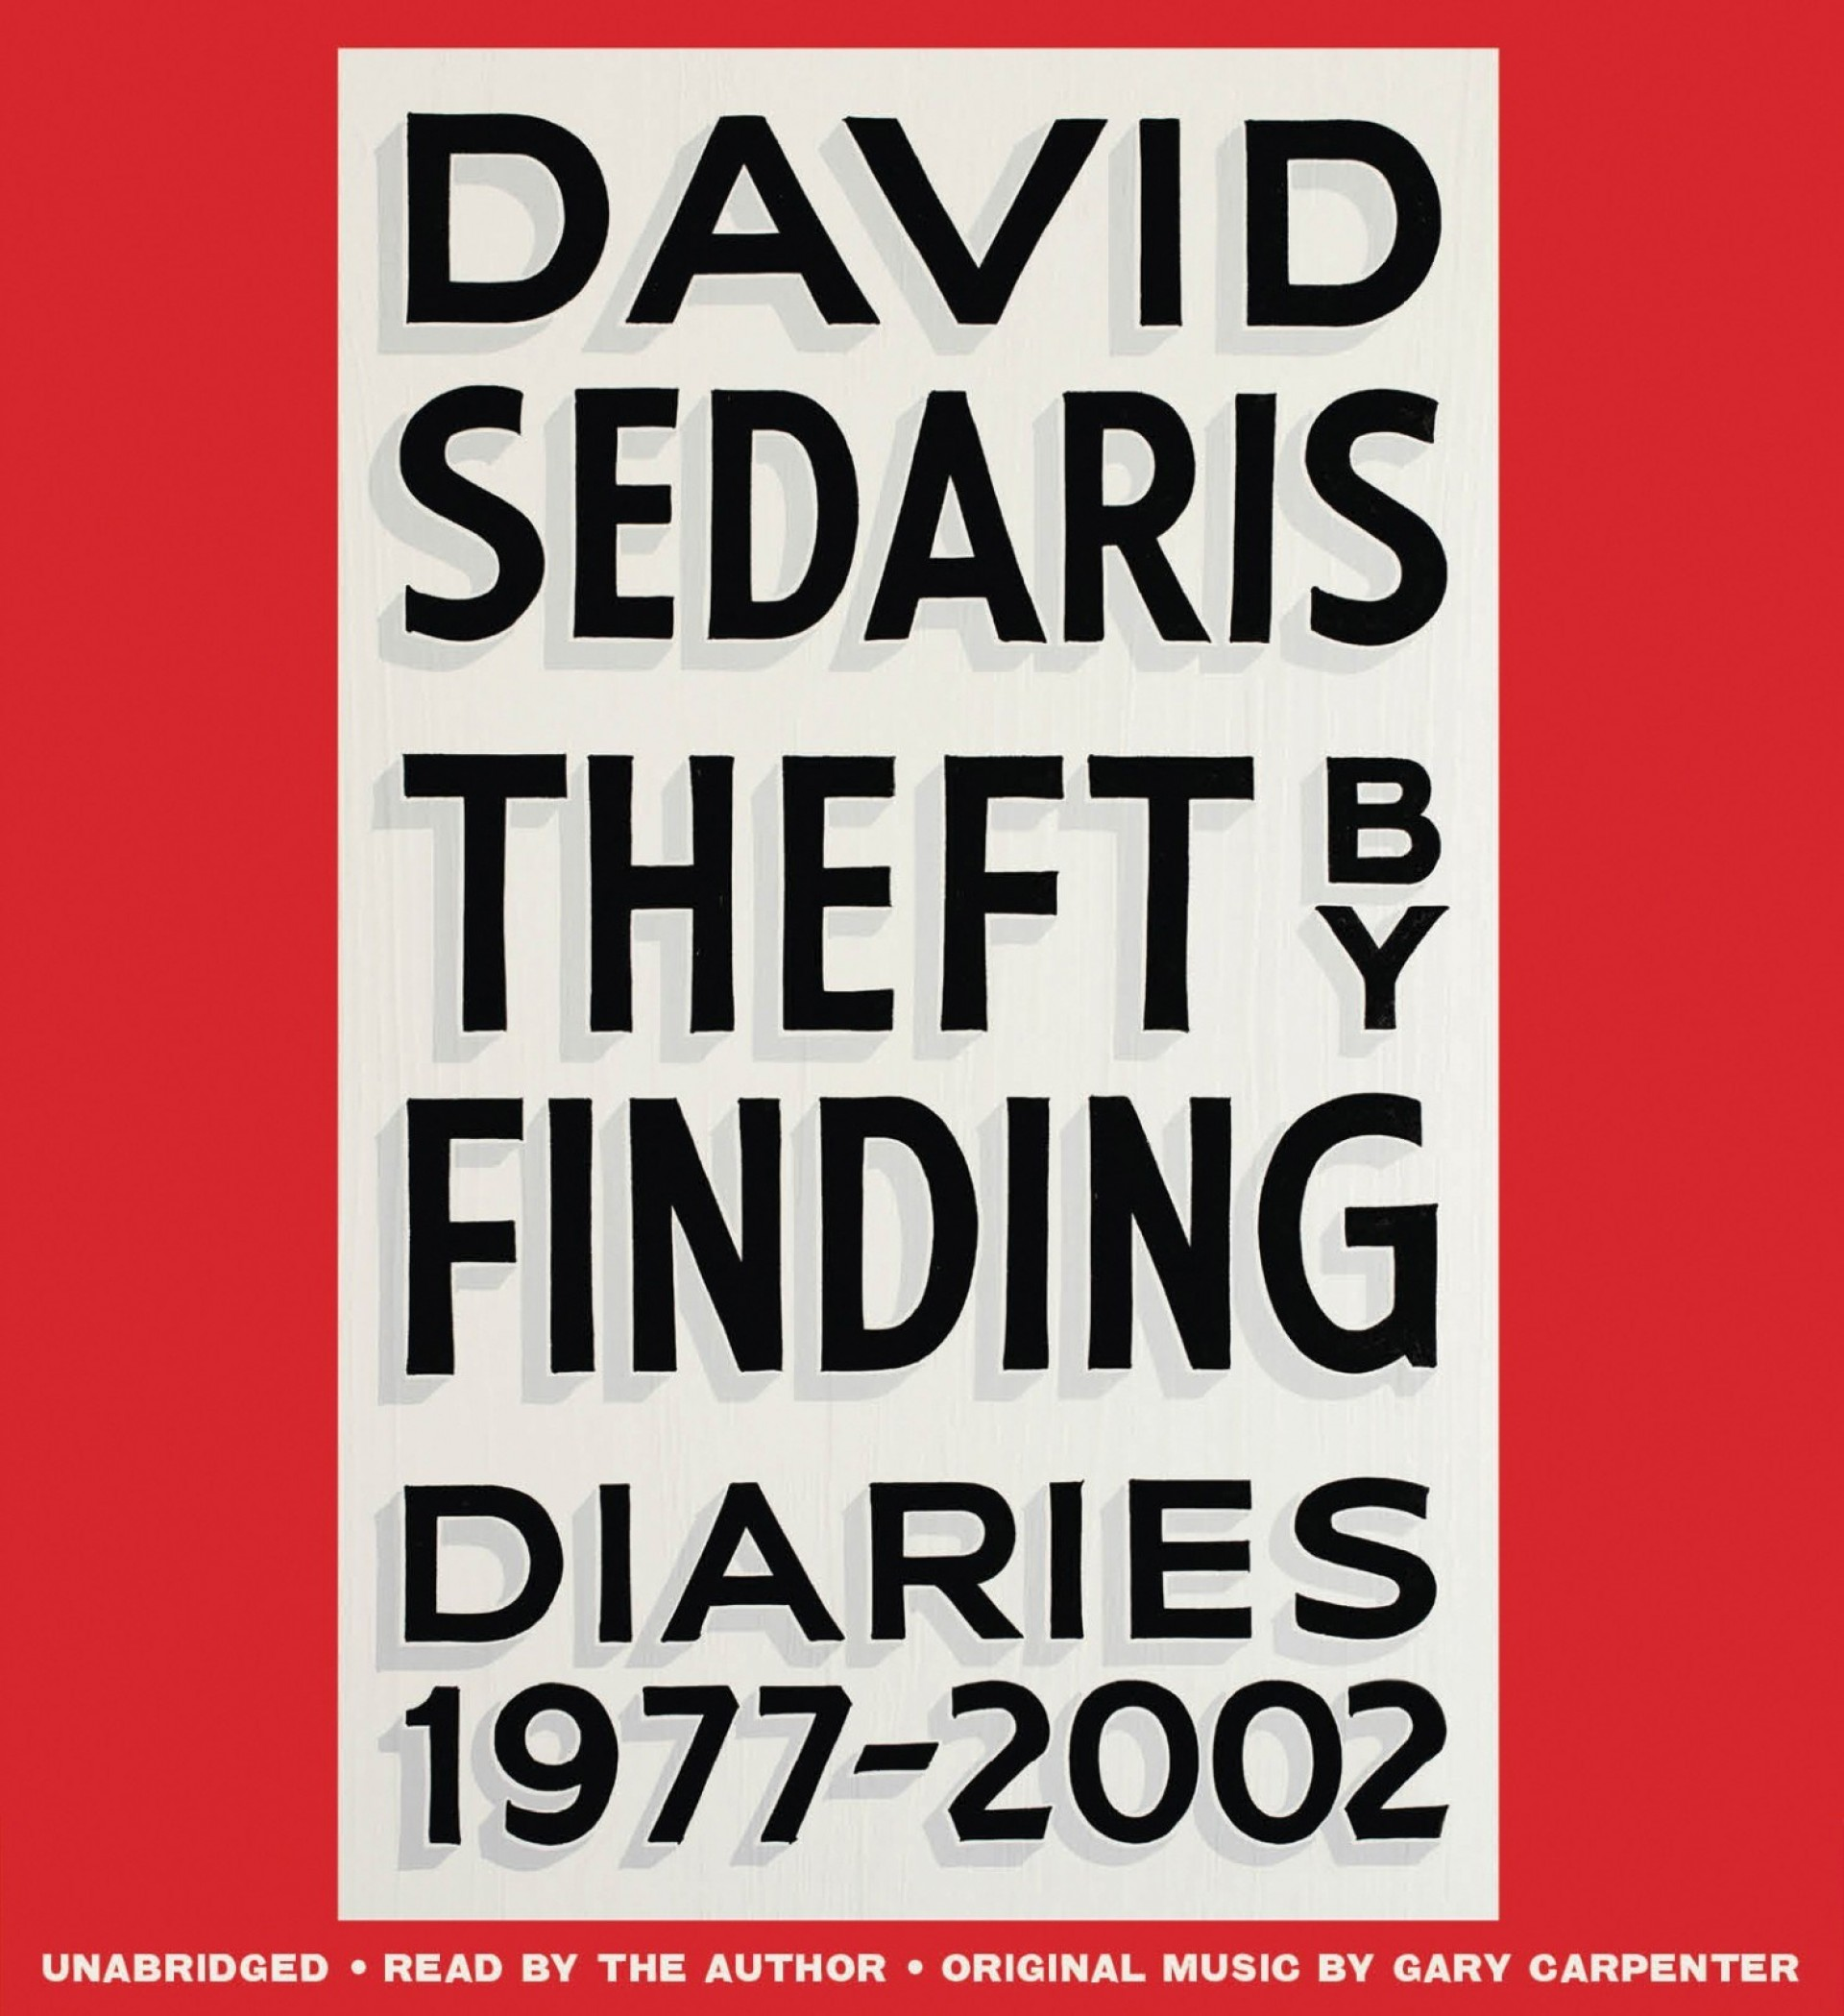 022 Theft By Finding1t20170517 Essay Example David Sedaris Fascinating Essays New Yorker Calypso 1920